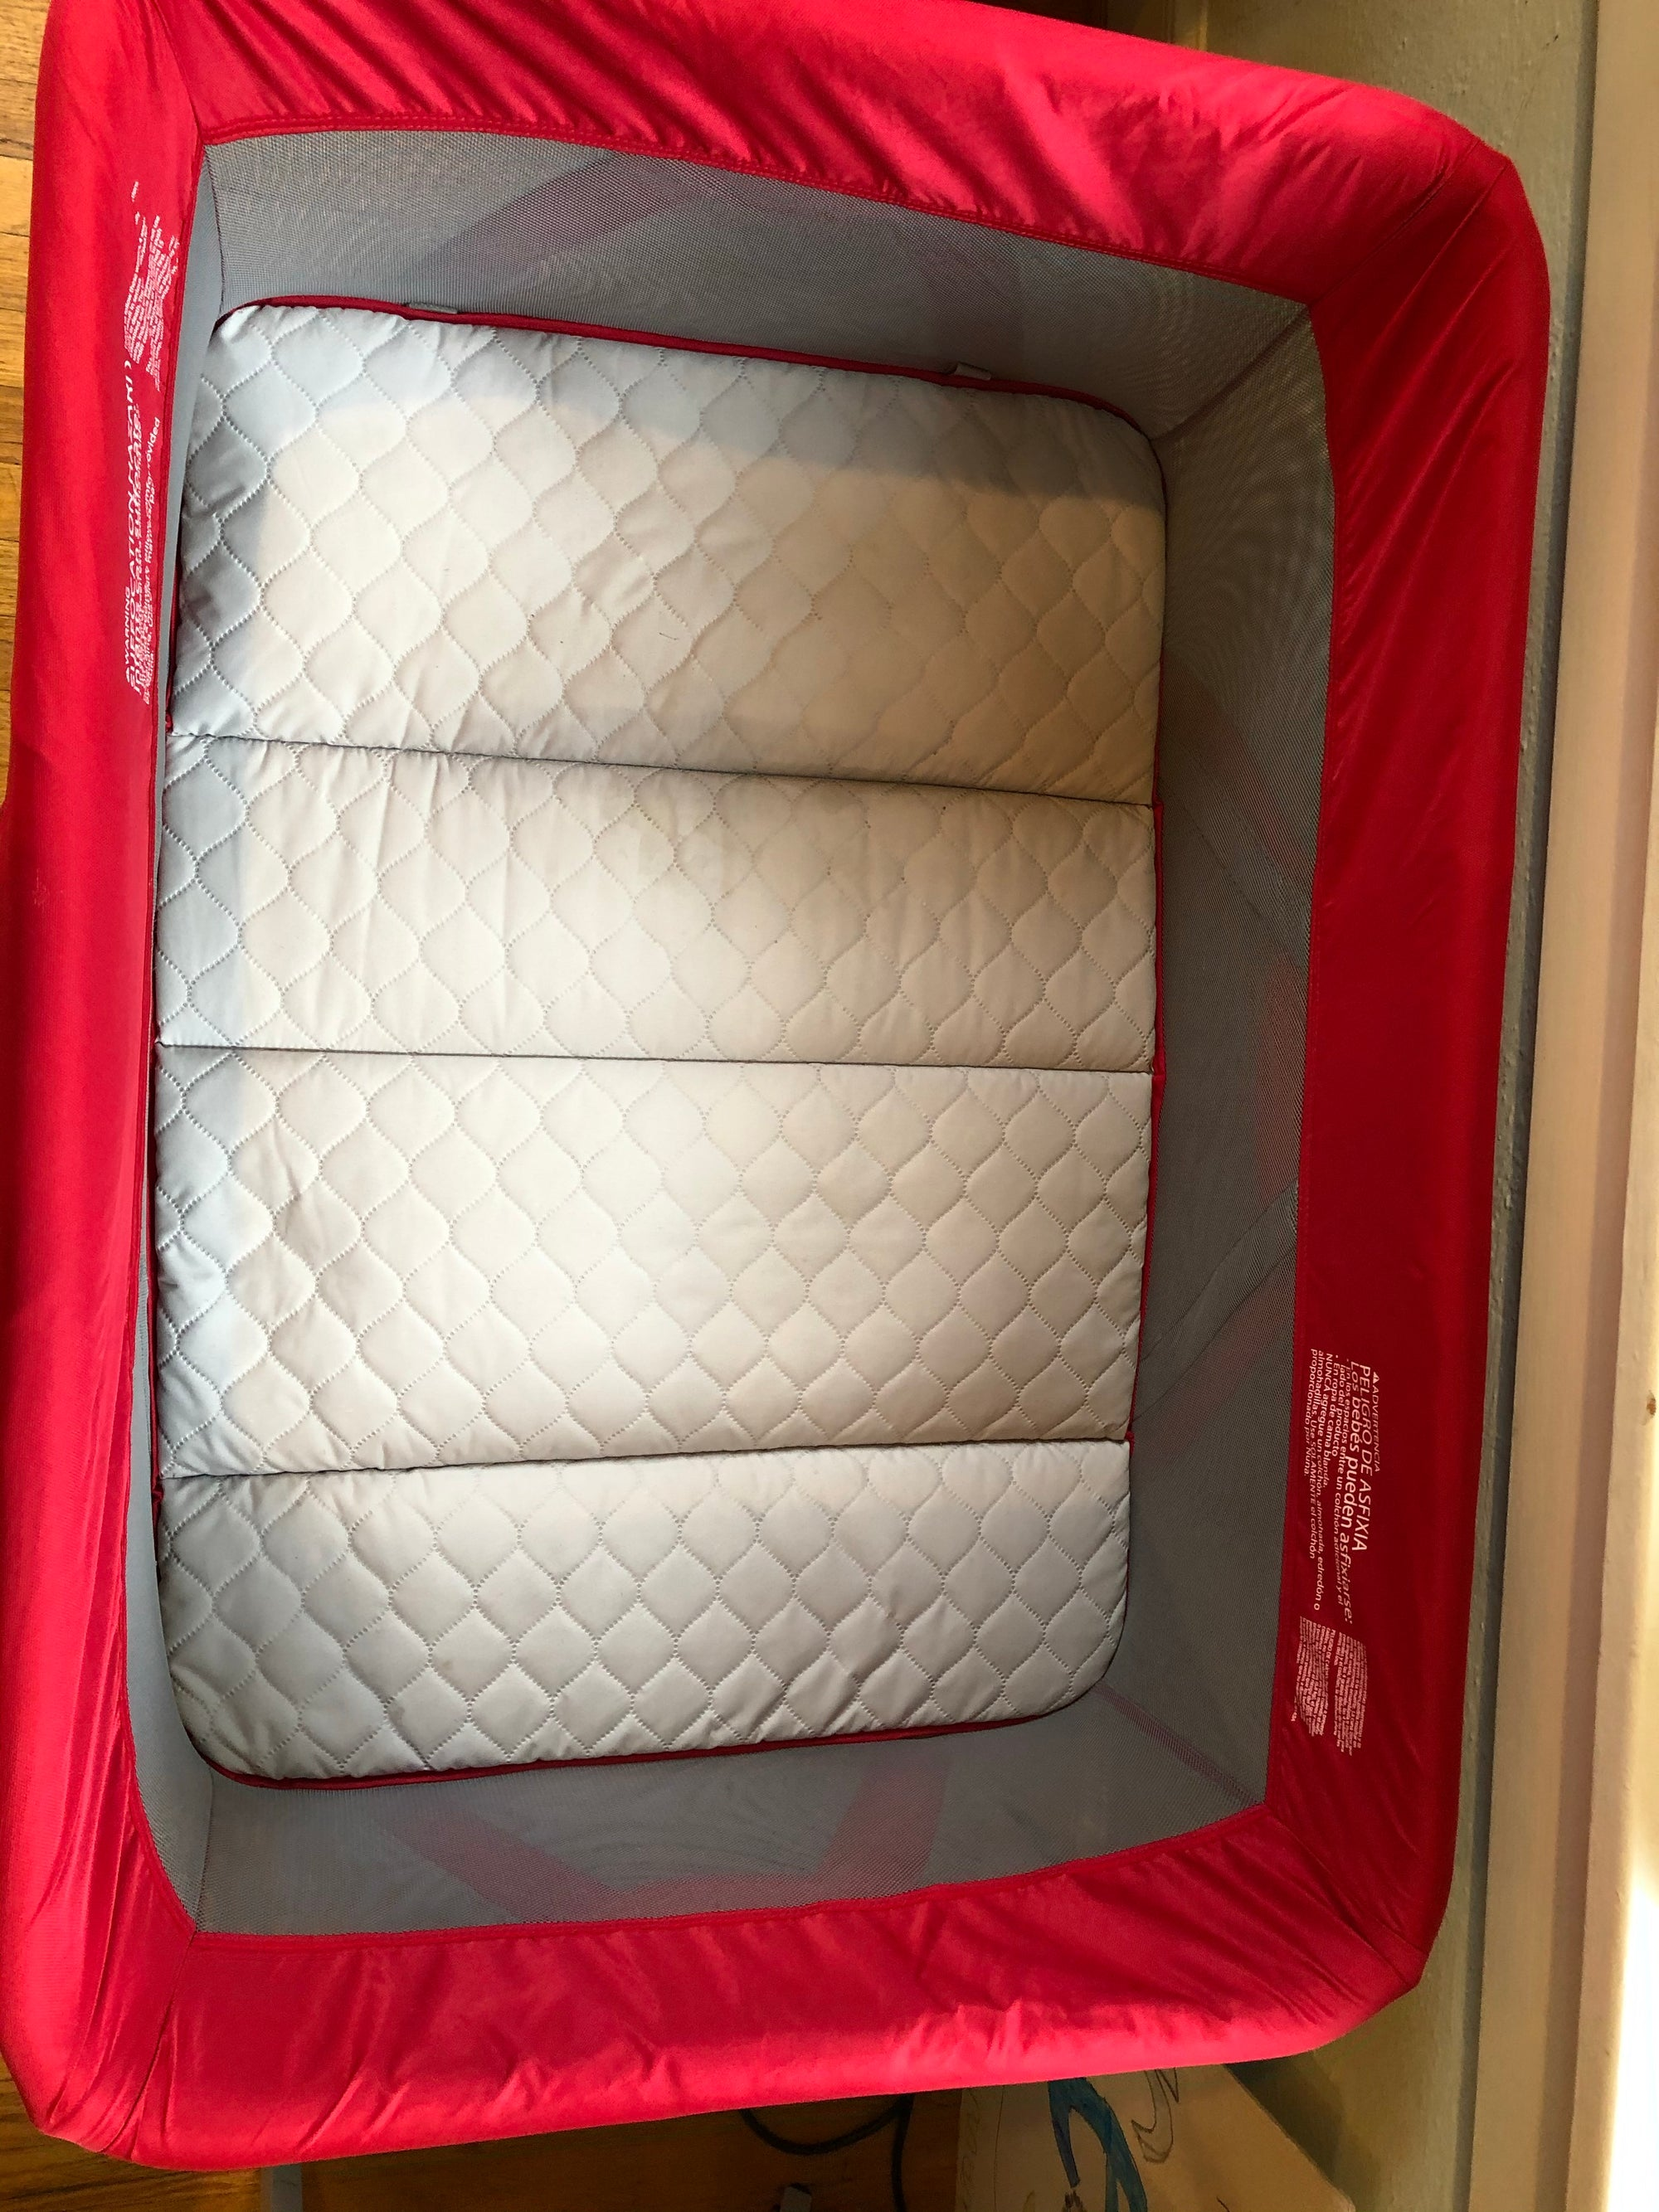 Nuna Travel Crib